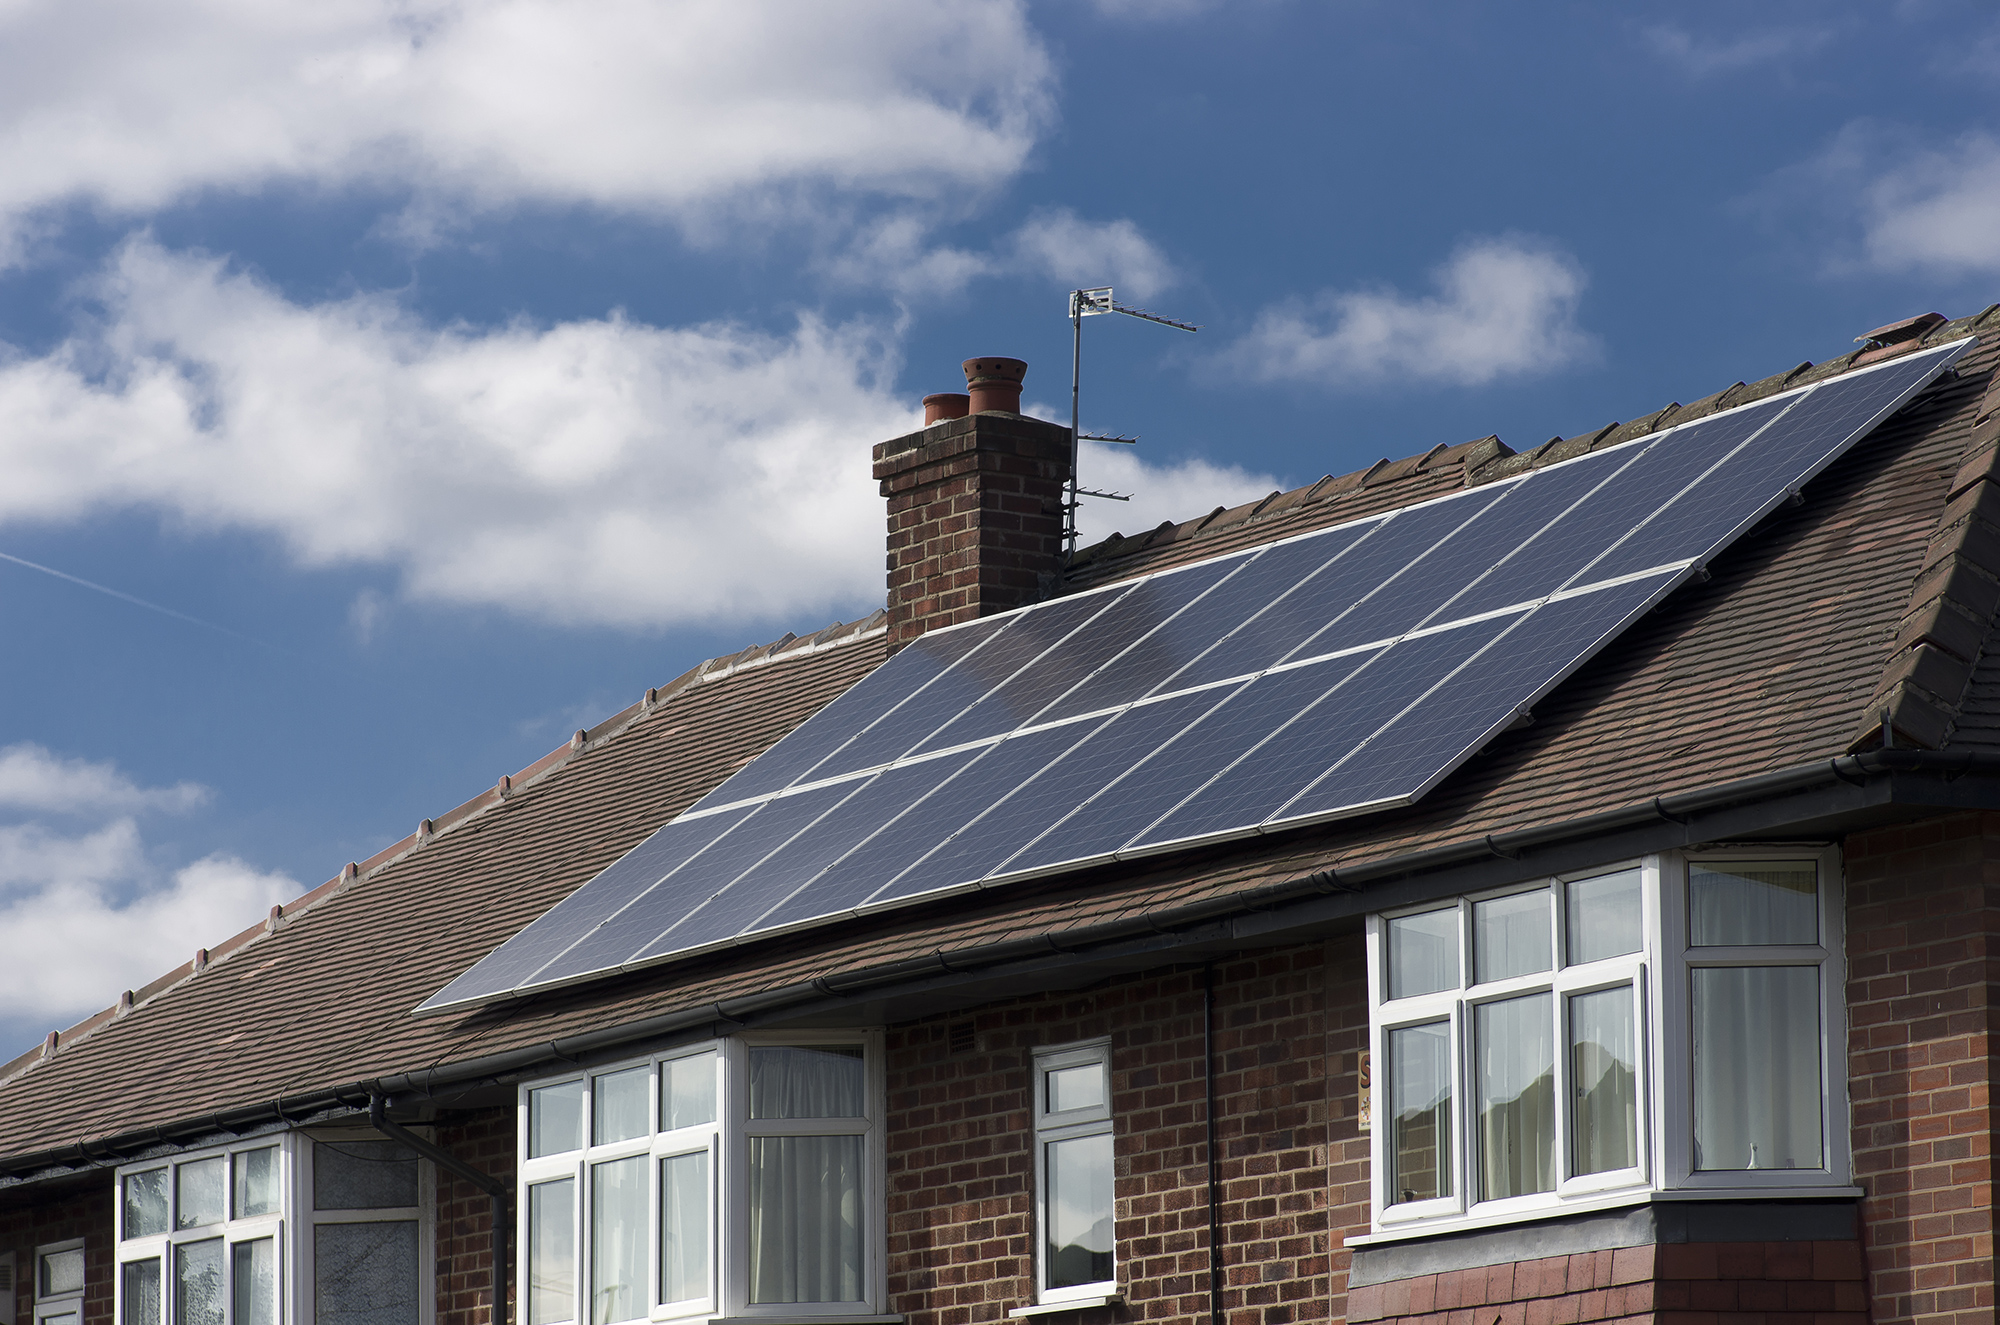 industry-energy-solar-united-kingdom-shutterstock_549748120.jpg